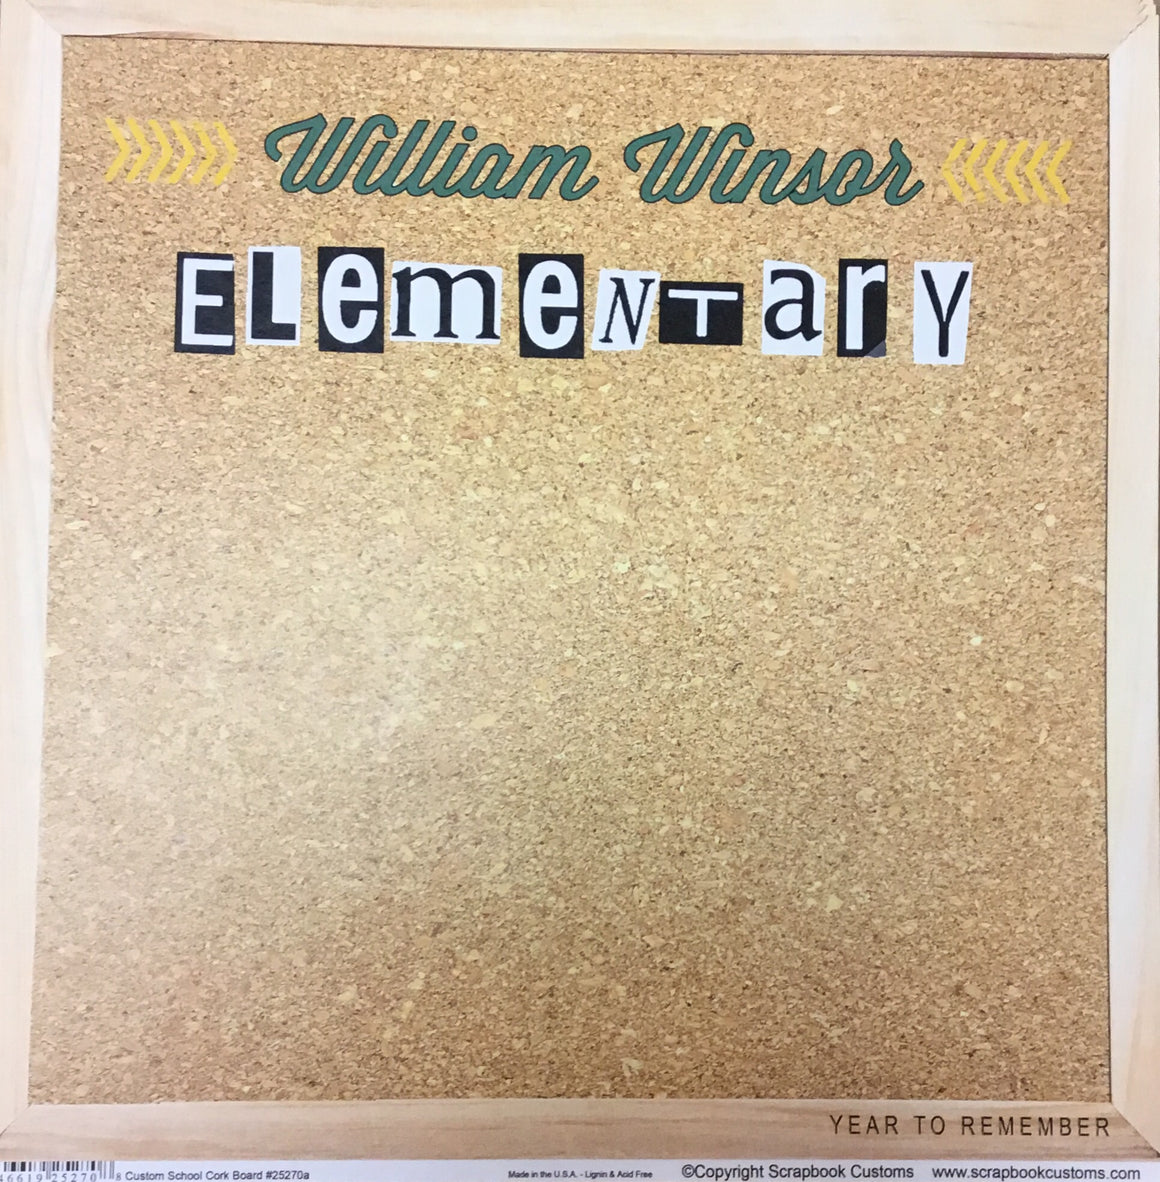 William Winsor Elementary School cork board paper